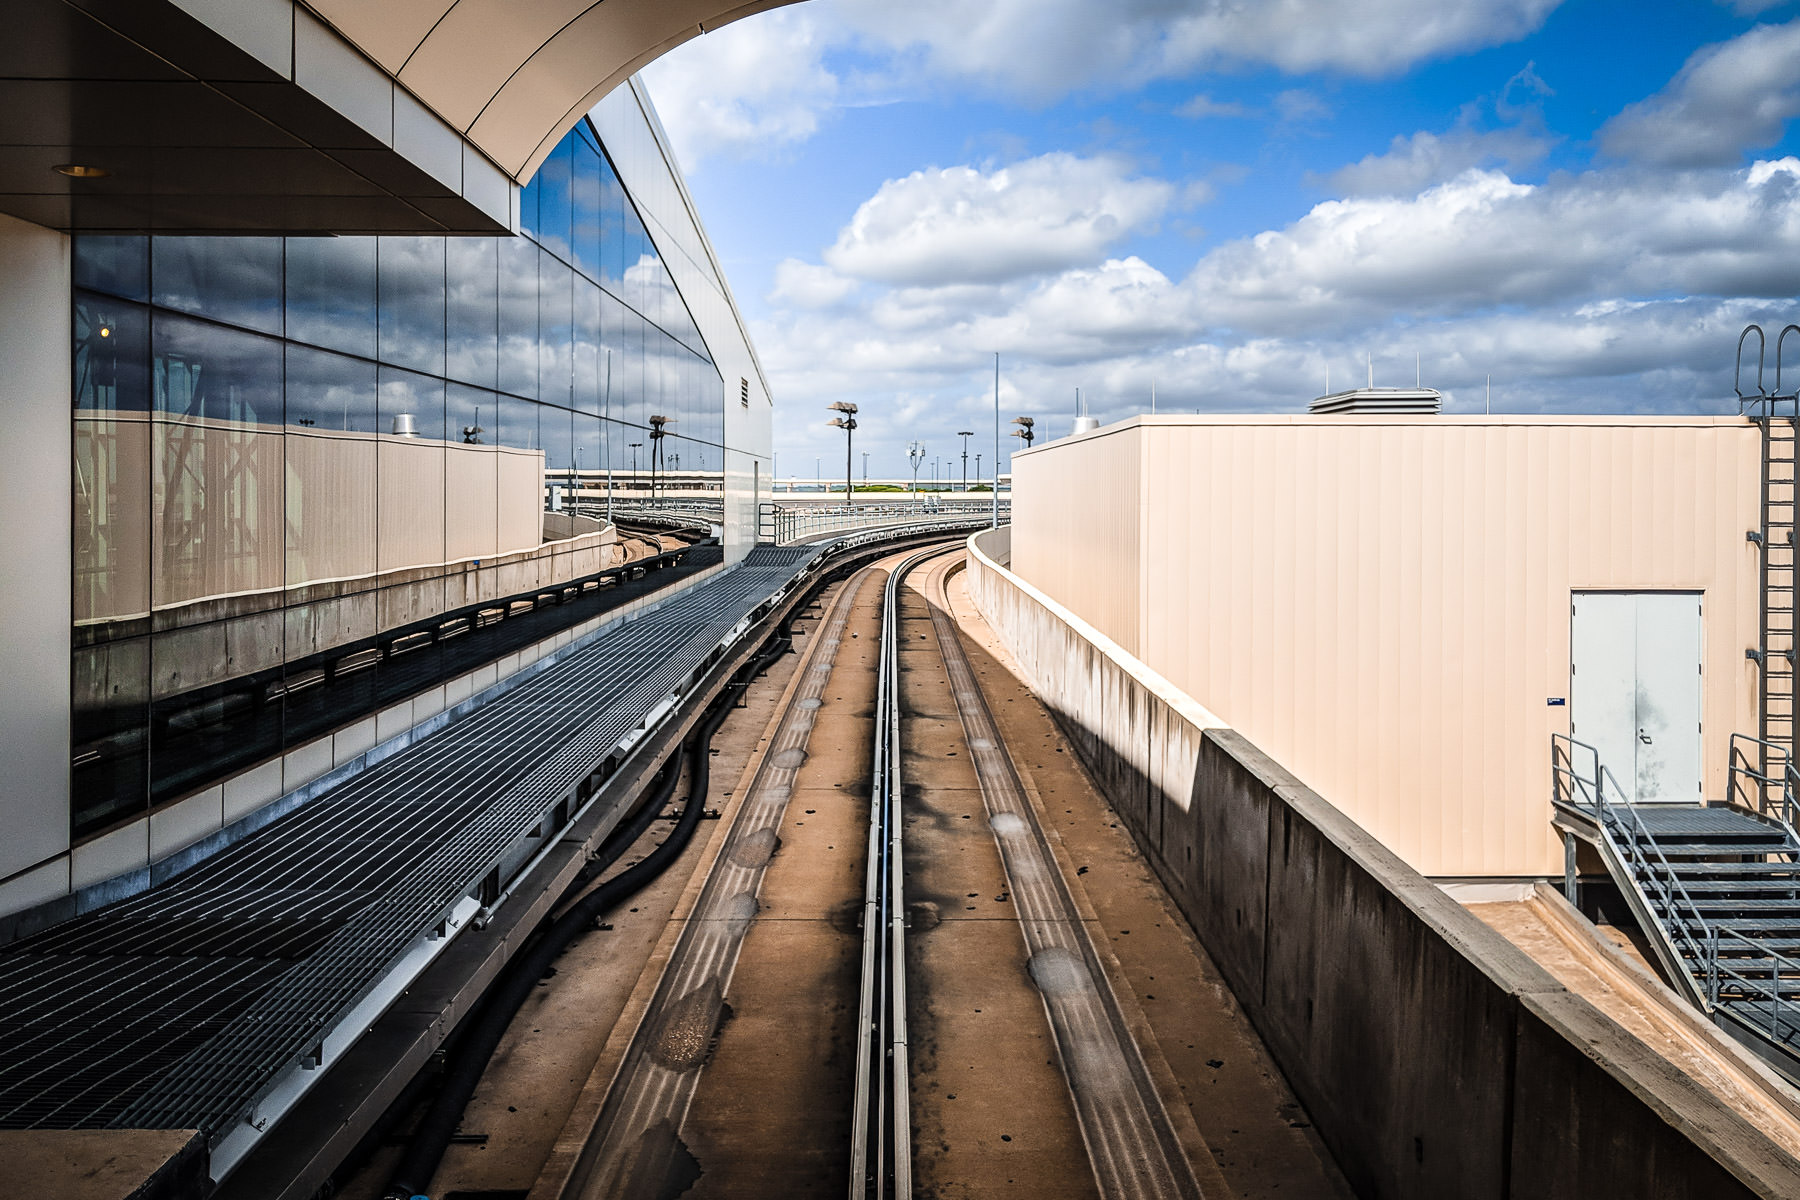 Tracks for the Skylink train lead away from a terminal at DFW International Airport, Texas.